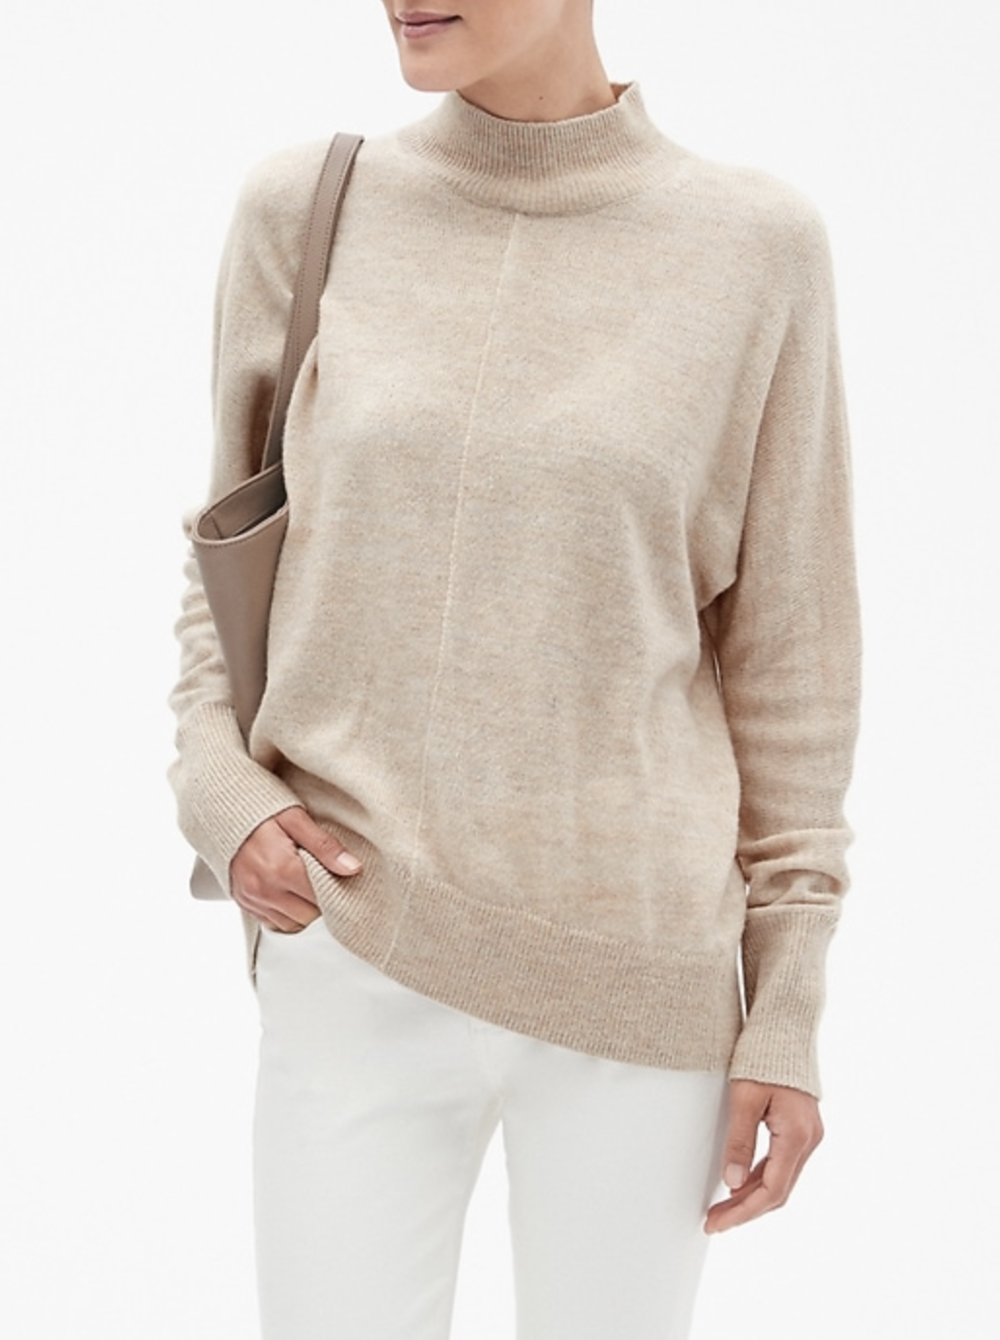 WHAT I BOUGHT | How I scored this luxury Banana Republic sweater as a birthday gift for myself for only $5!